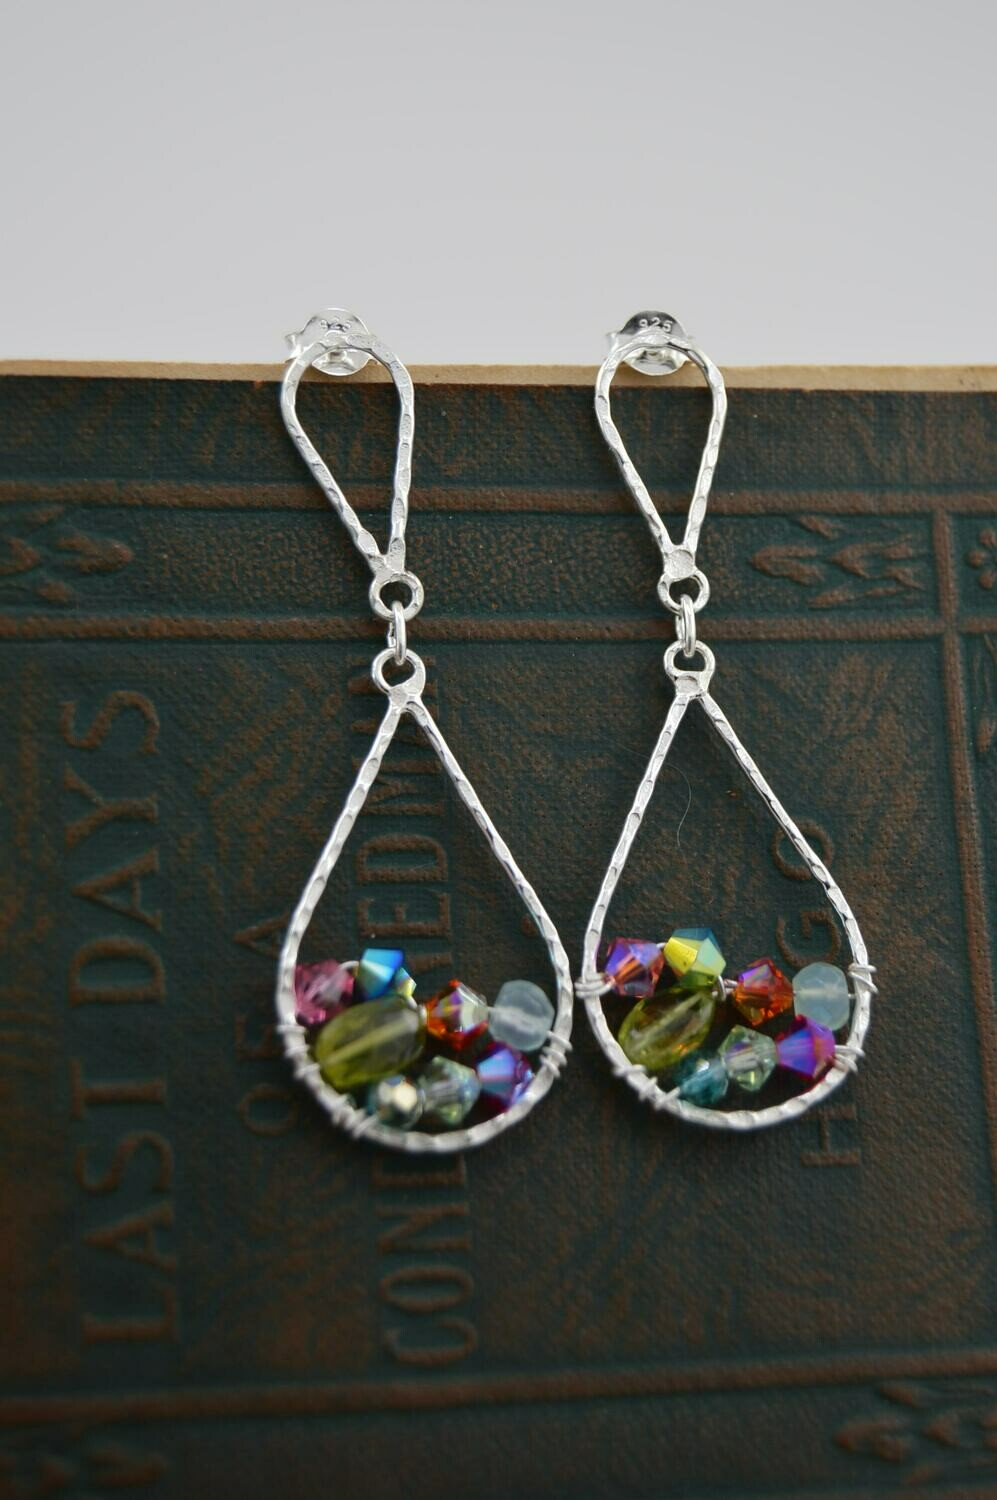 Hammered Drop Earrings with Crystal and Gem Accents